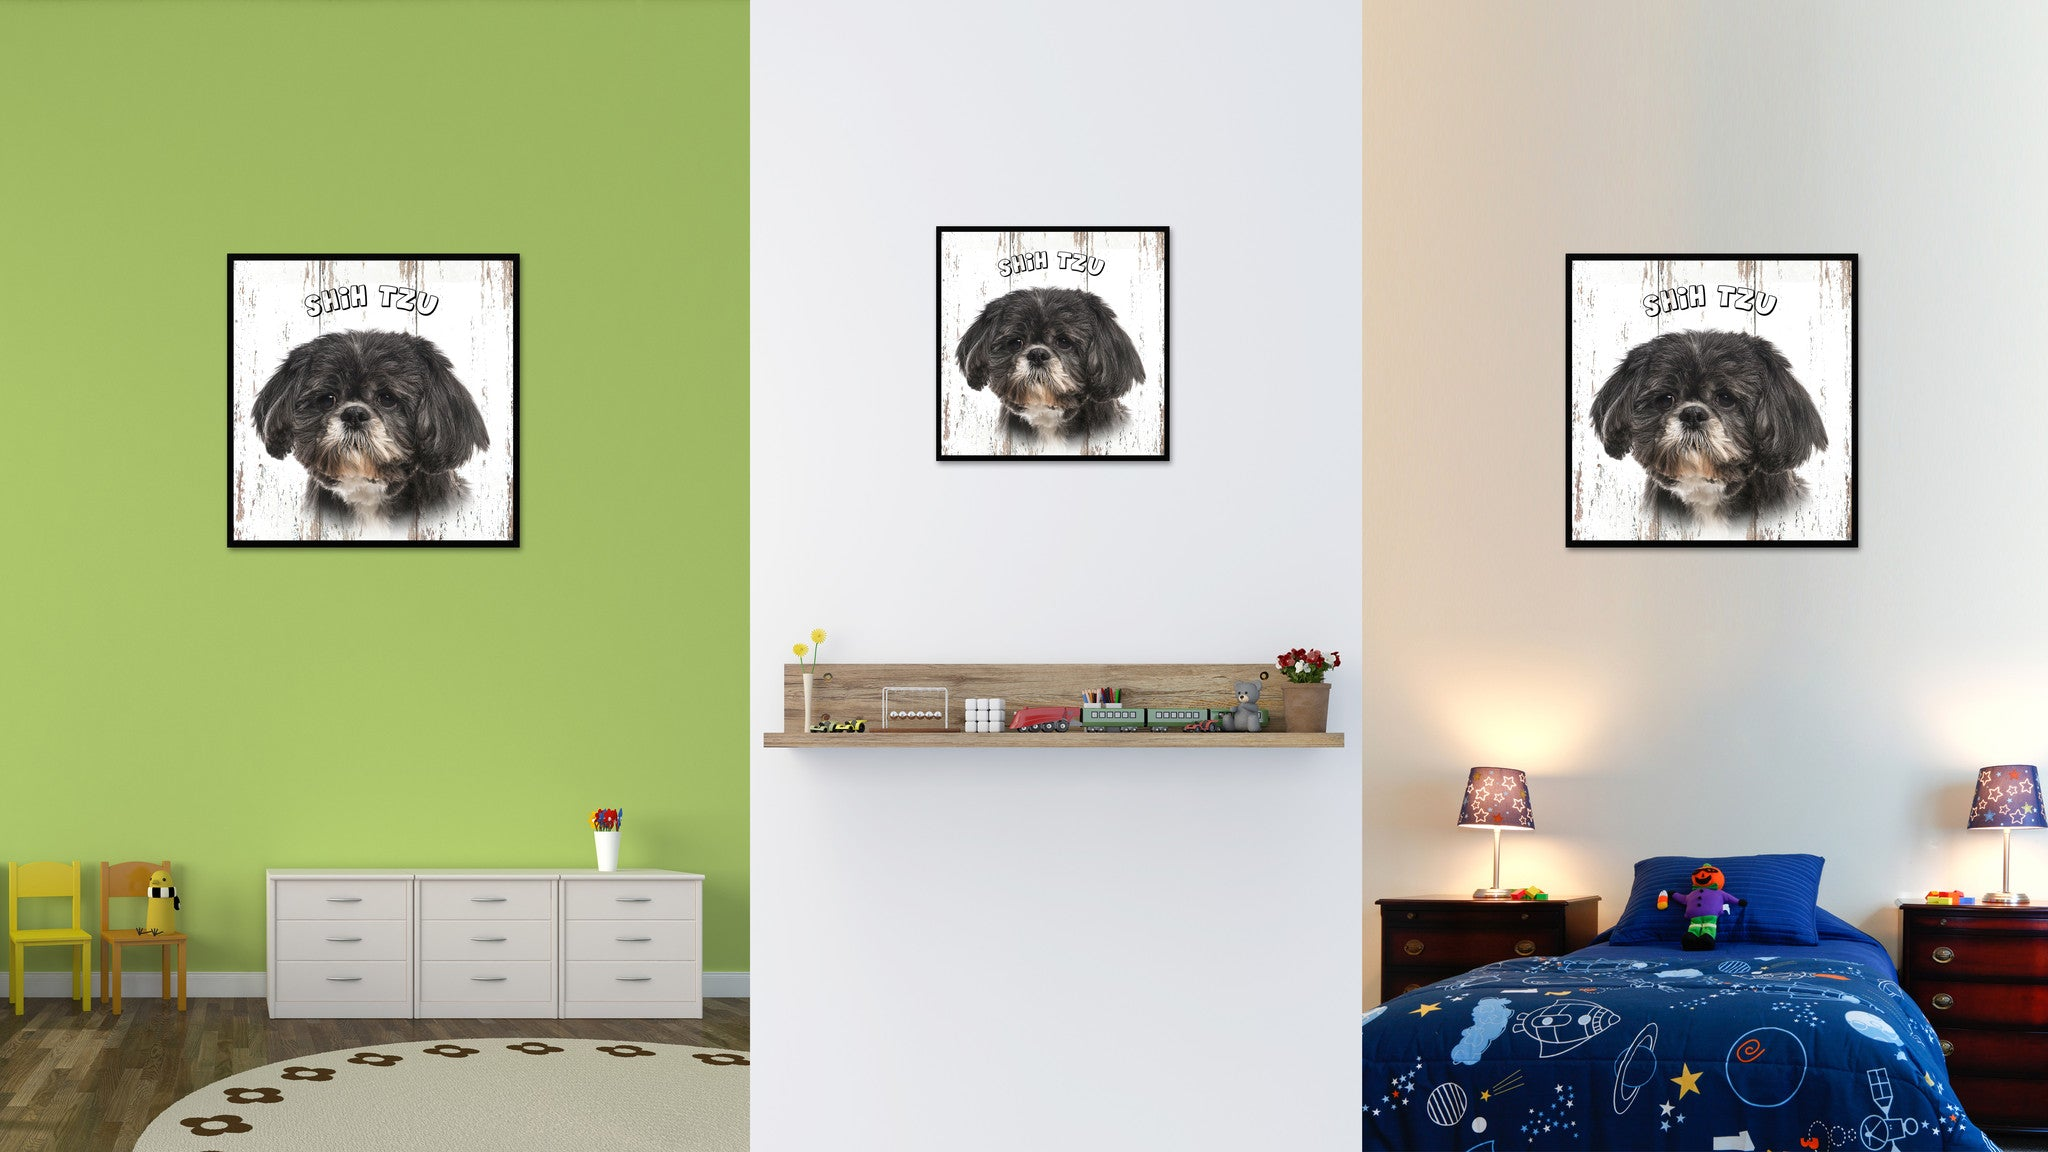 Shih Tzu Dog Canvas Print Picture Frame Gift Home Decor Wall Art Decoration